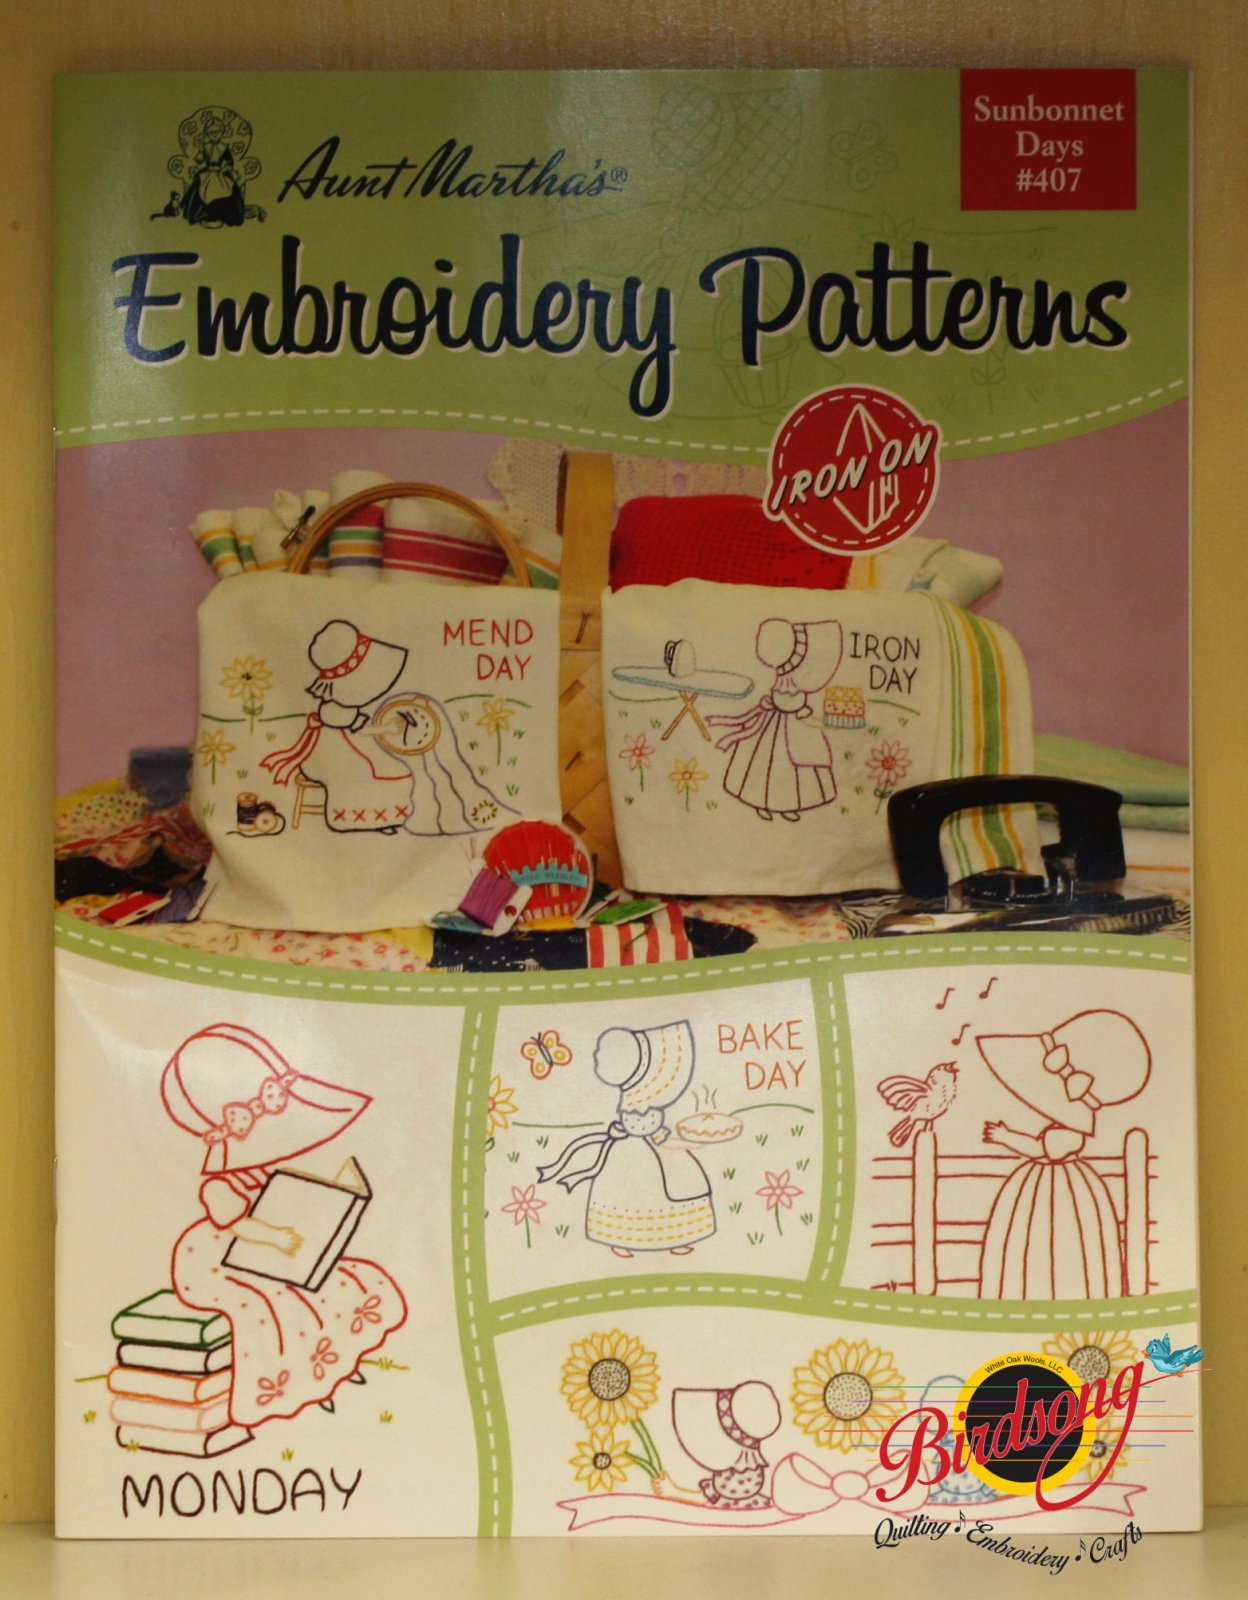 Sunbonnet Days #407 Iron On Embroidery Patterns